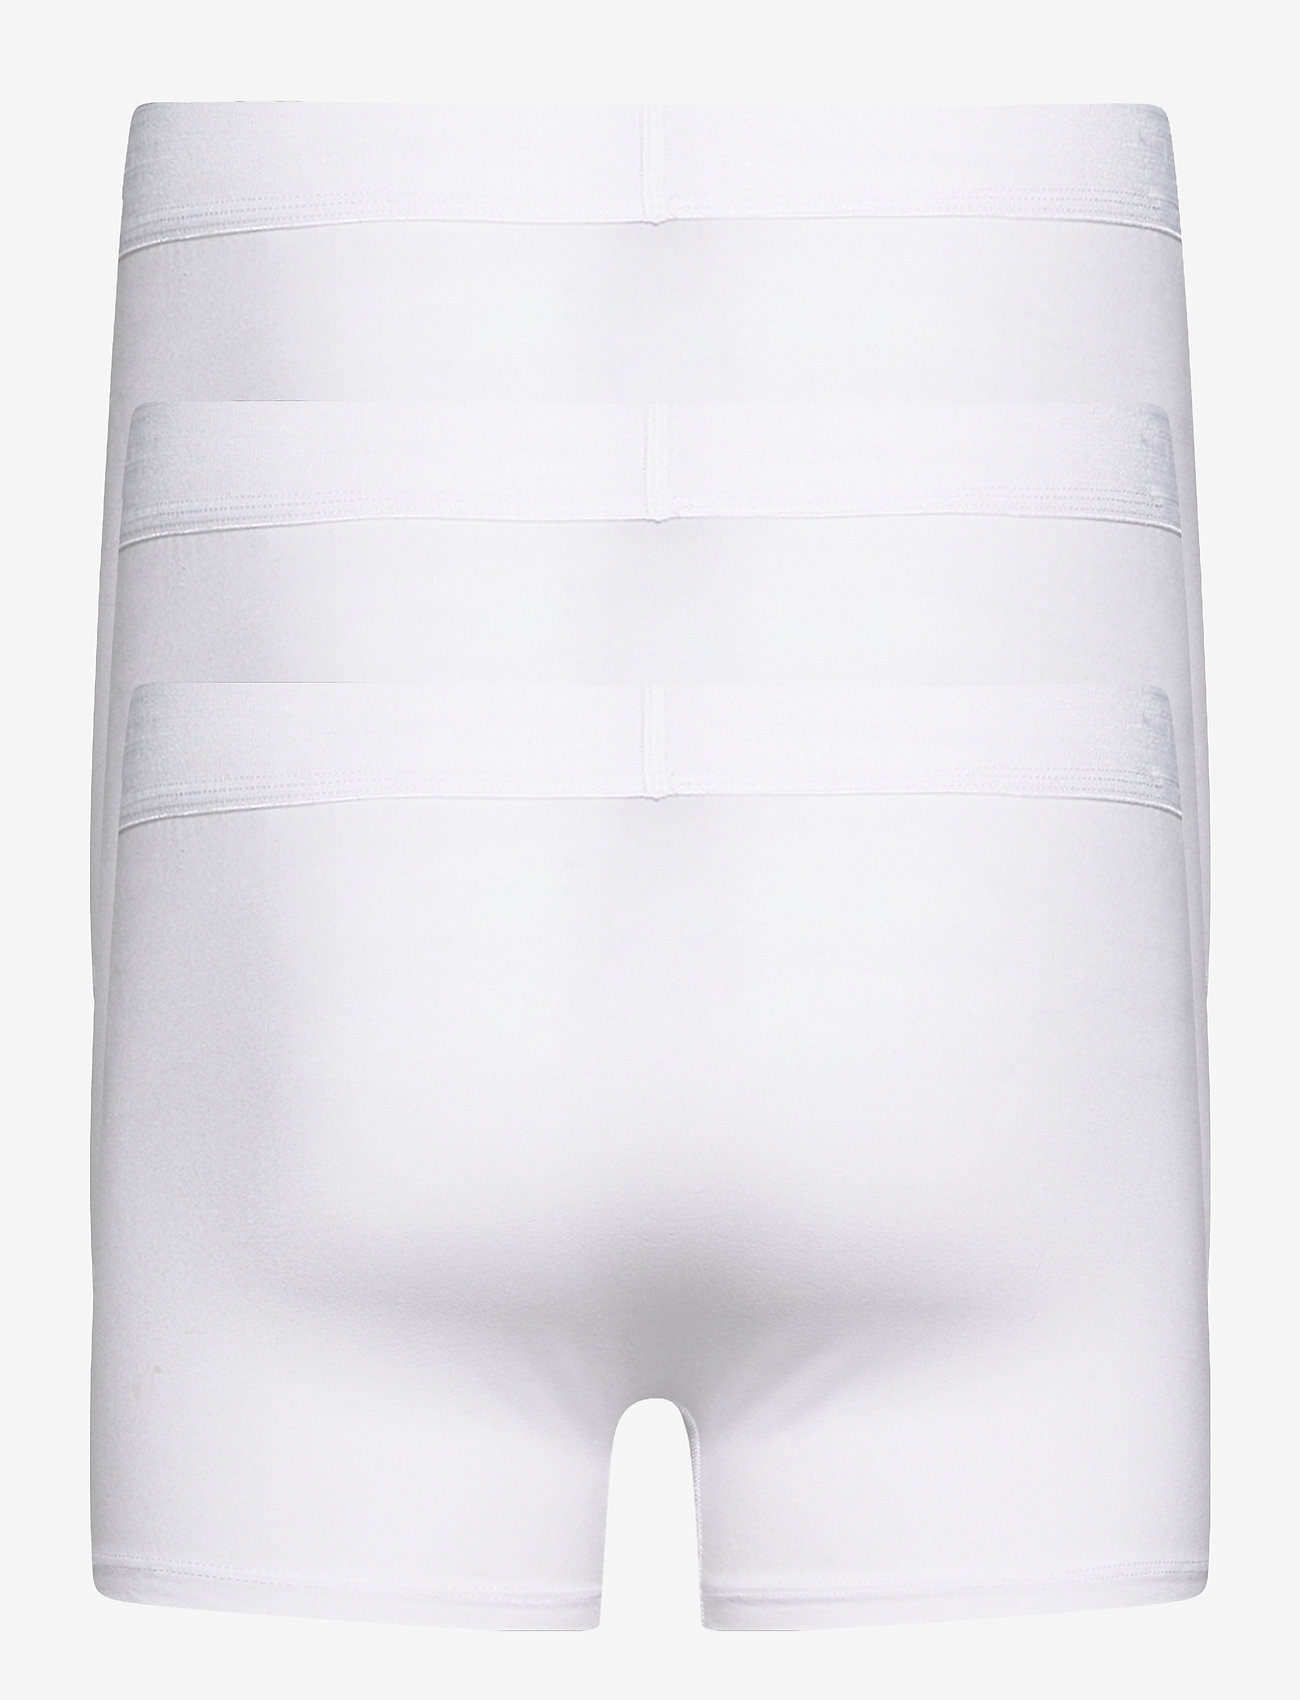 Tiger of Sweden - BRAGEHI - boxershortser - pure white - 1